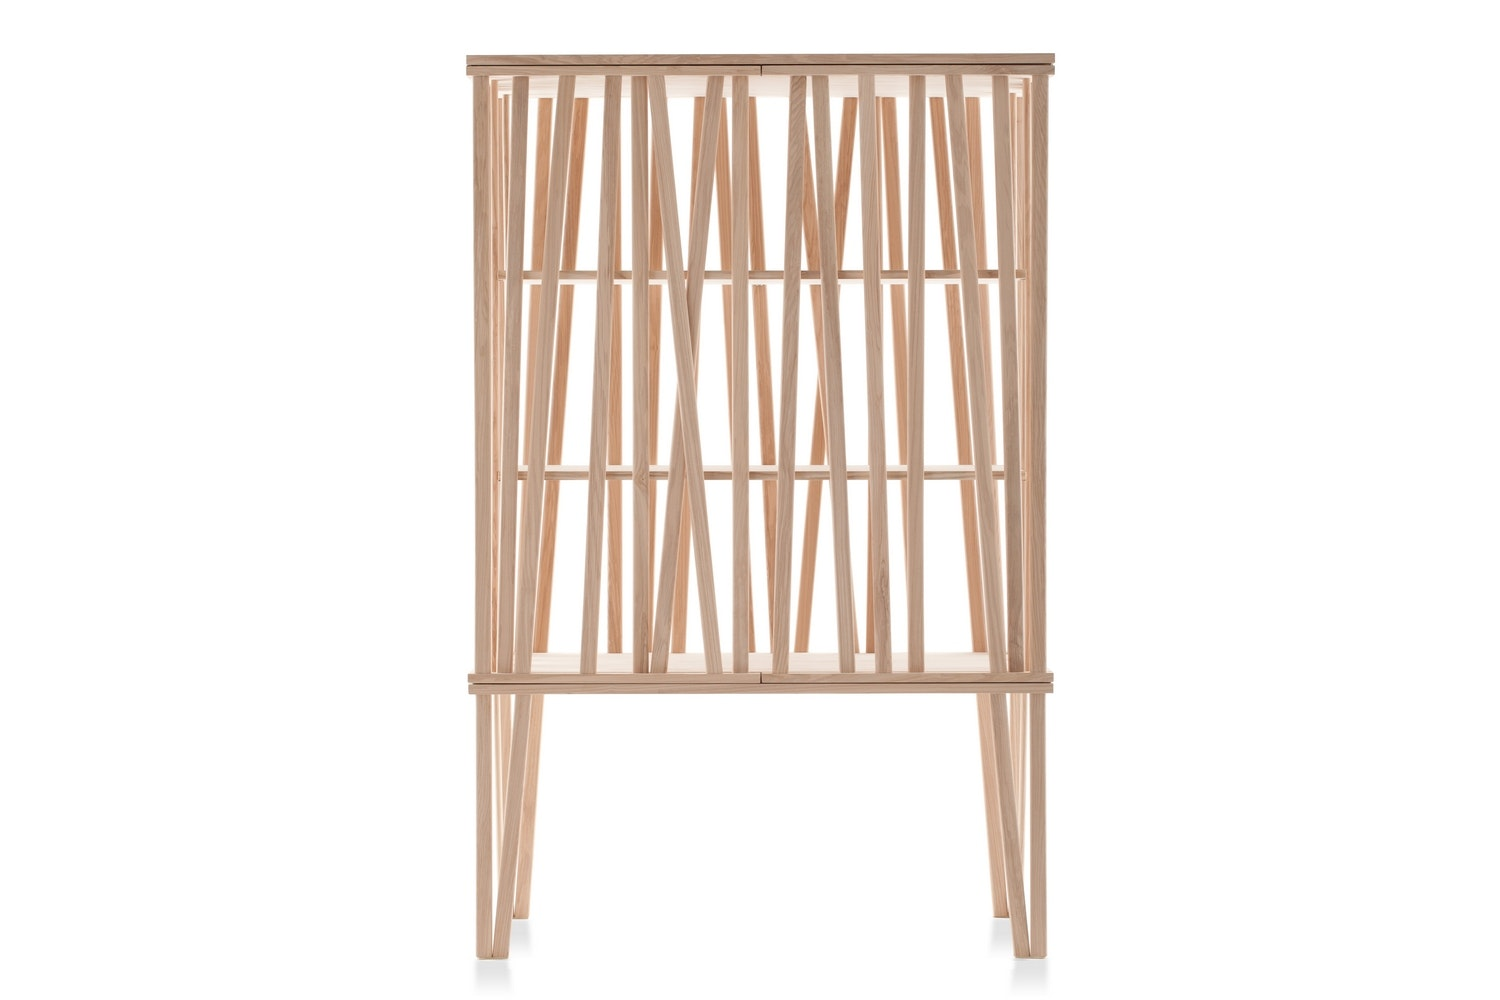 Mikado Sideboard by Front for Porro